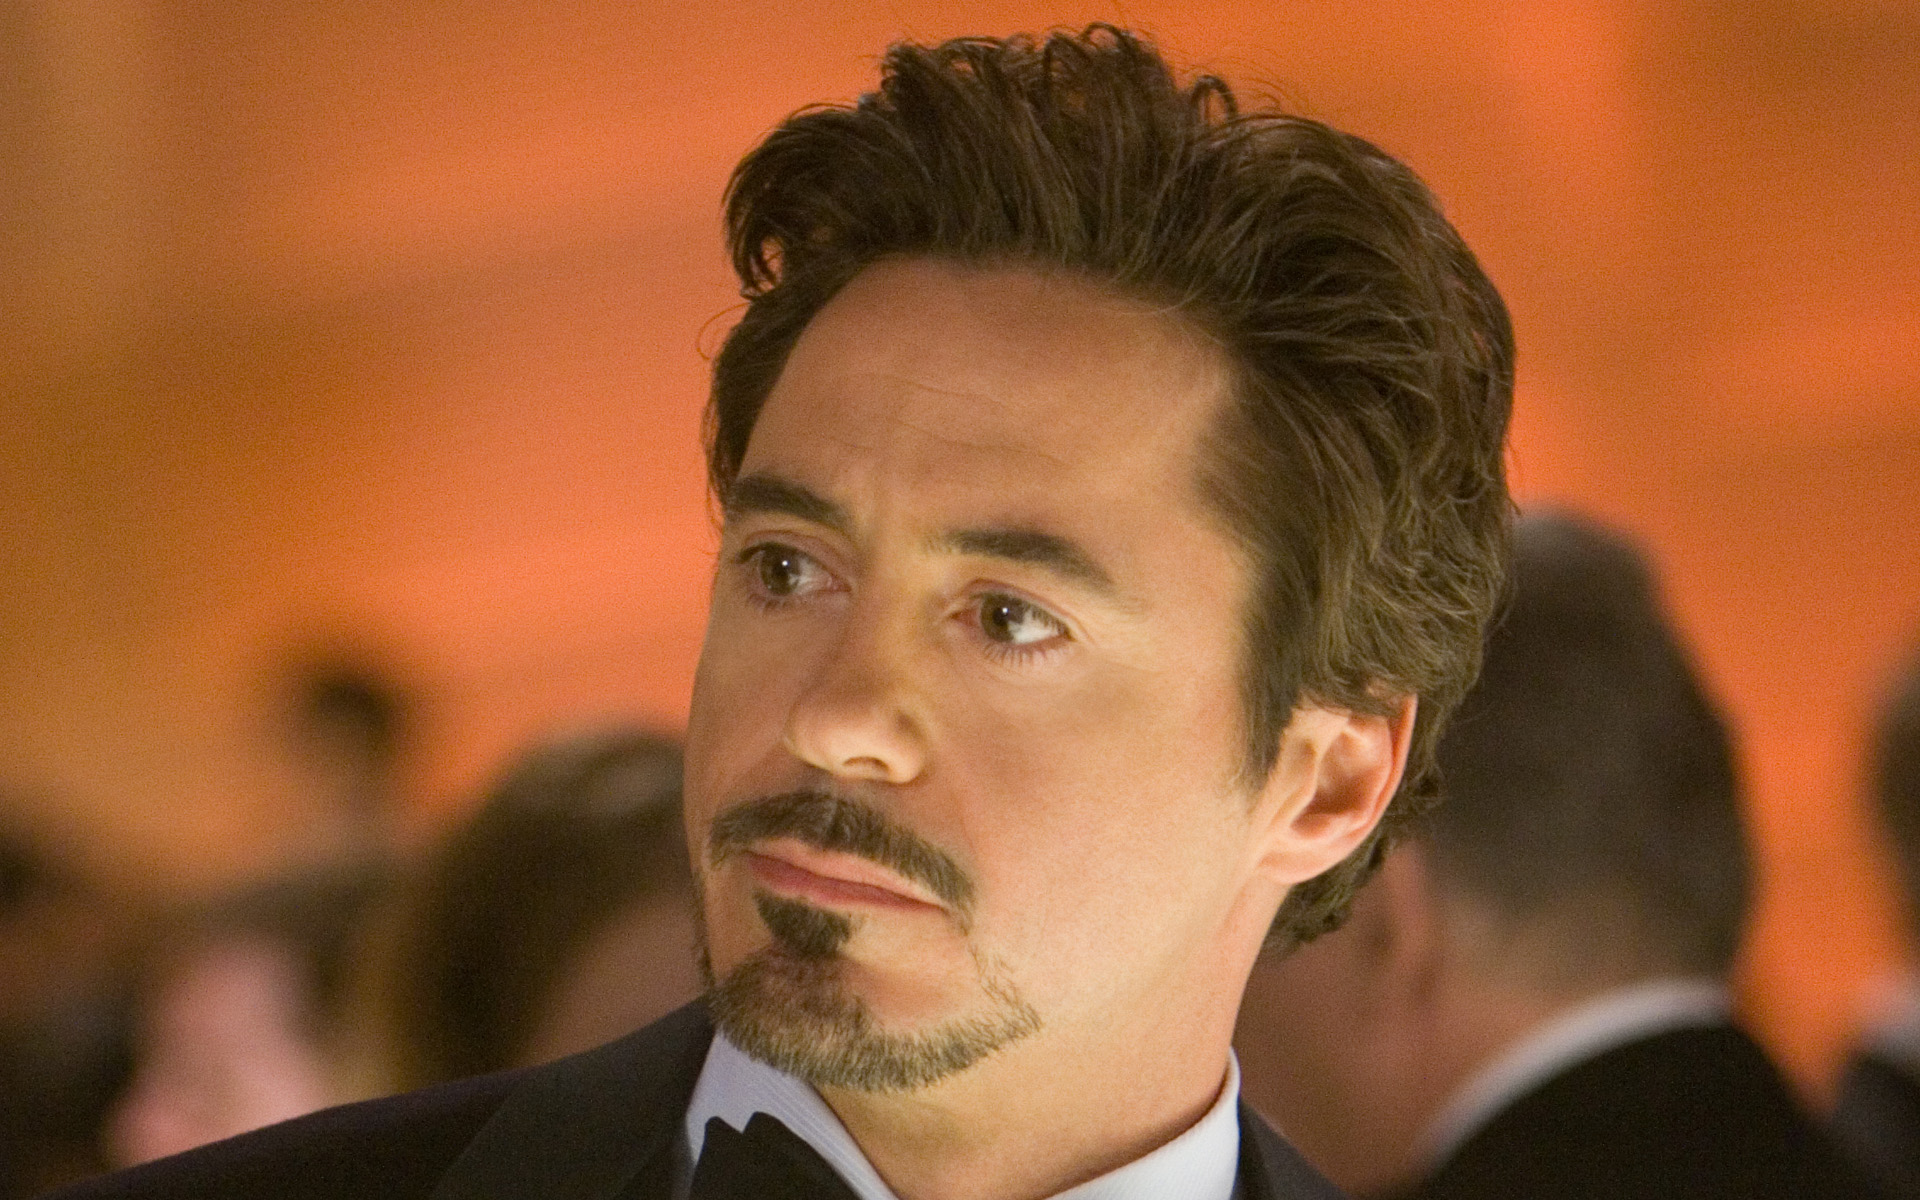 Download Best Stylish Robert Downey Jr Wallpaper Wallpapers Images